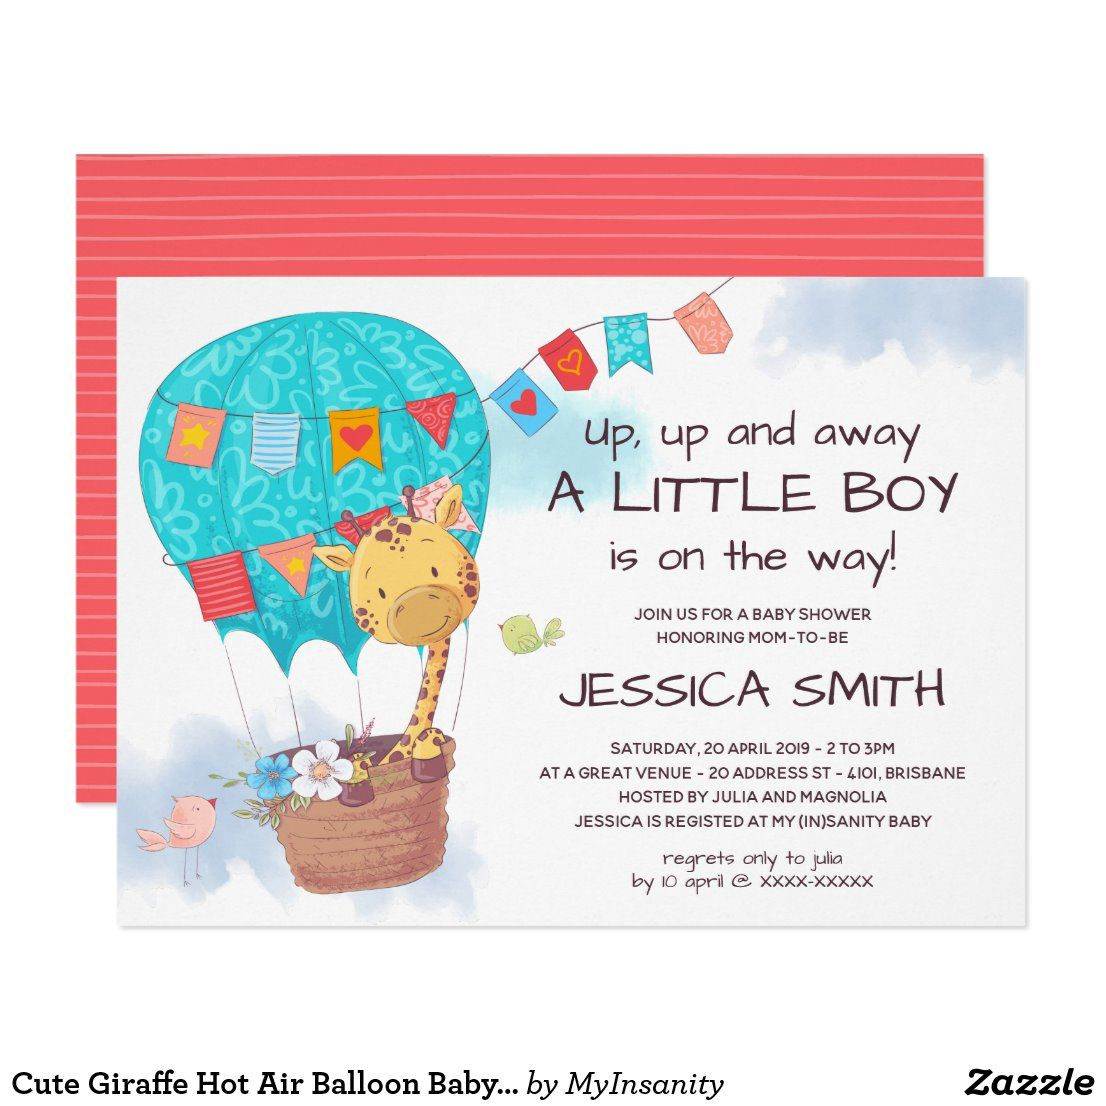 Cute Giraffe Hot Air Balloon Baby Shower Invitation | Zazzle.com